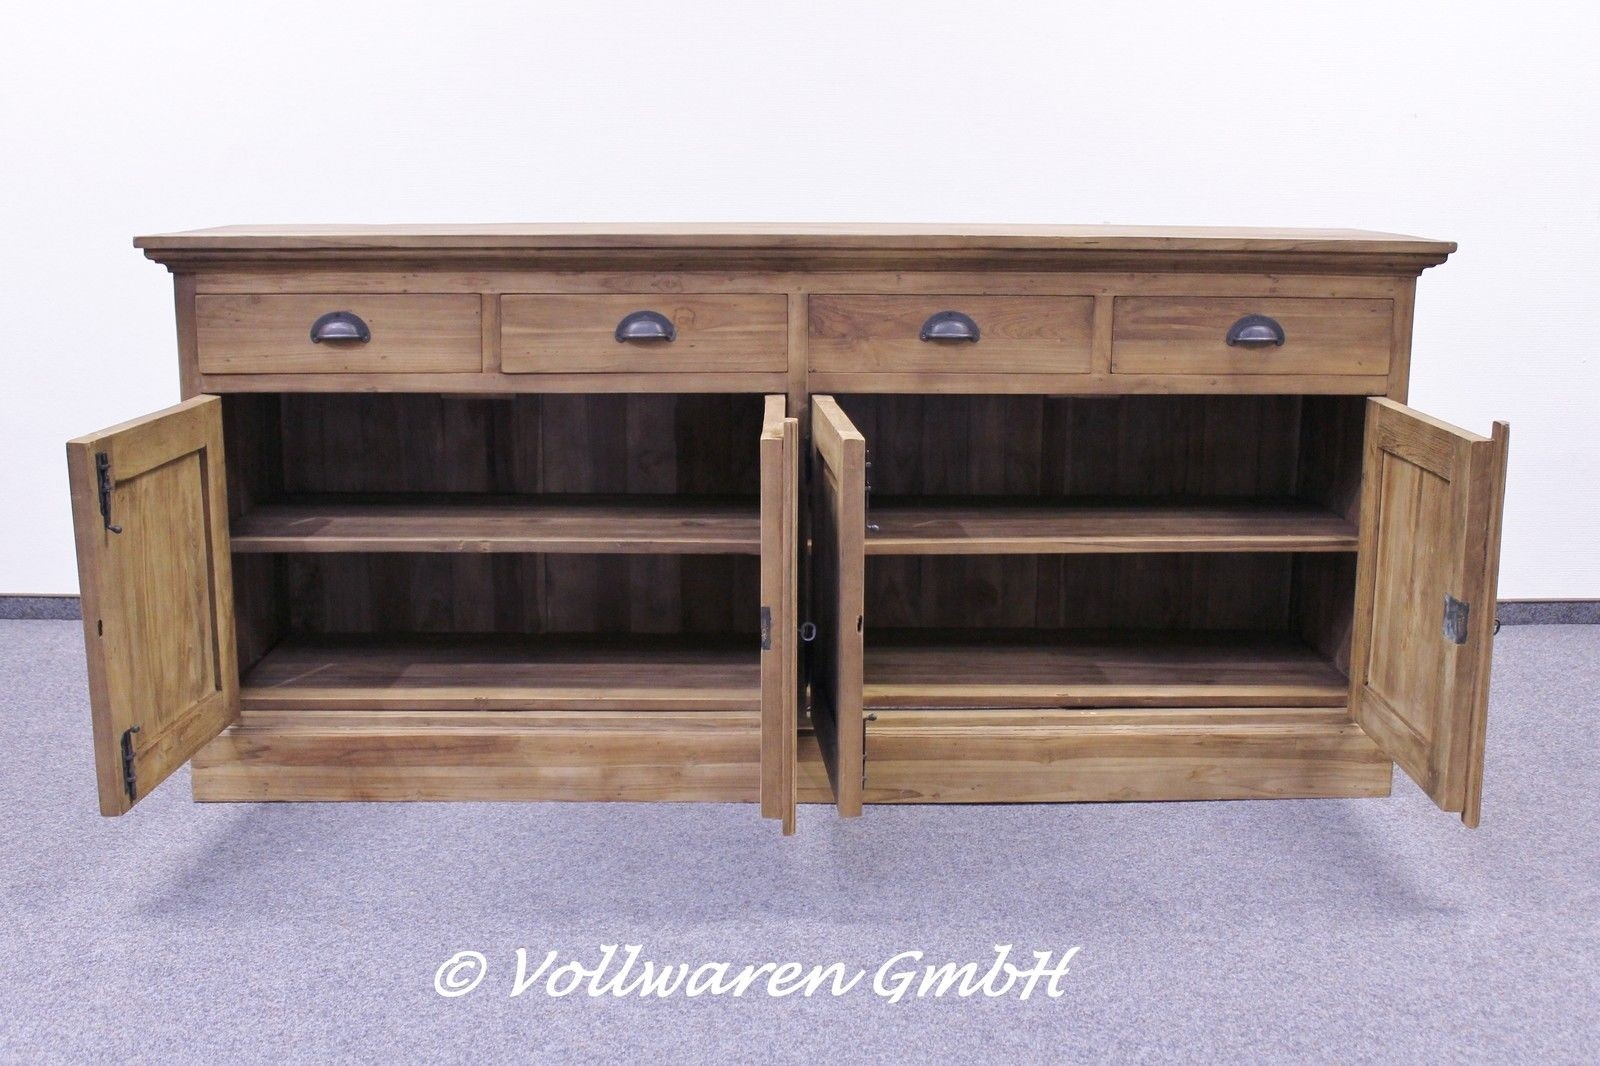 teak sideboard se54 3 4 t ren vollwaren. Black Bedroom Furniture Sets. Home Design Ideas